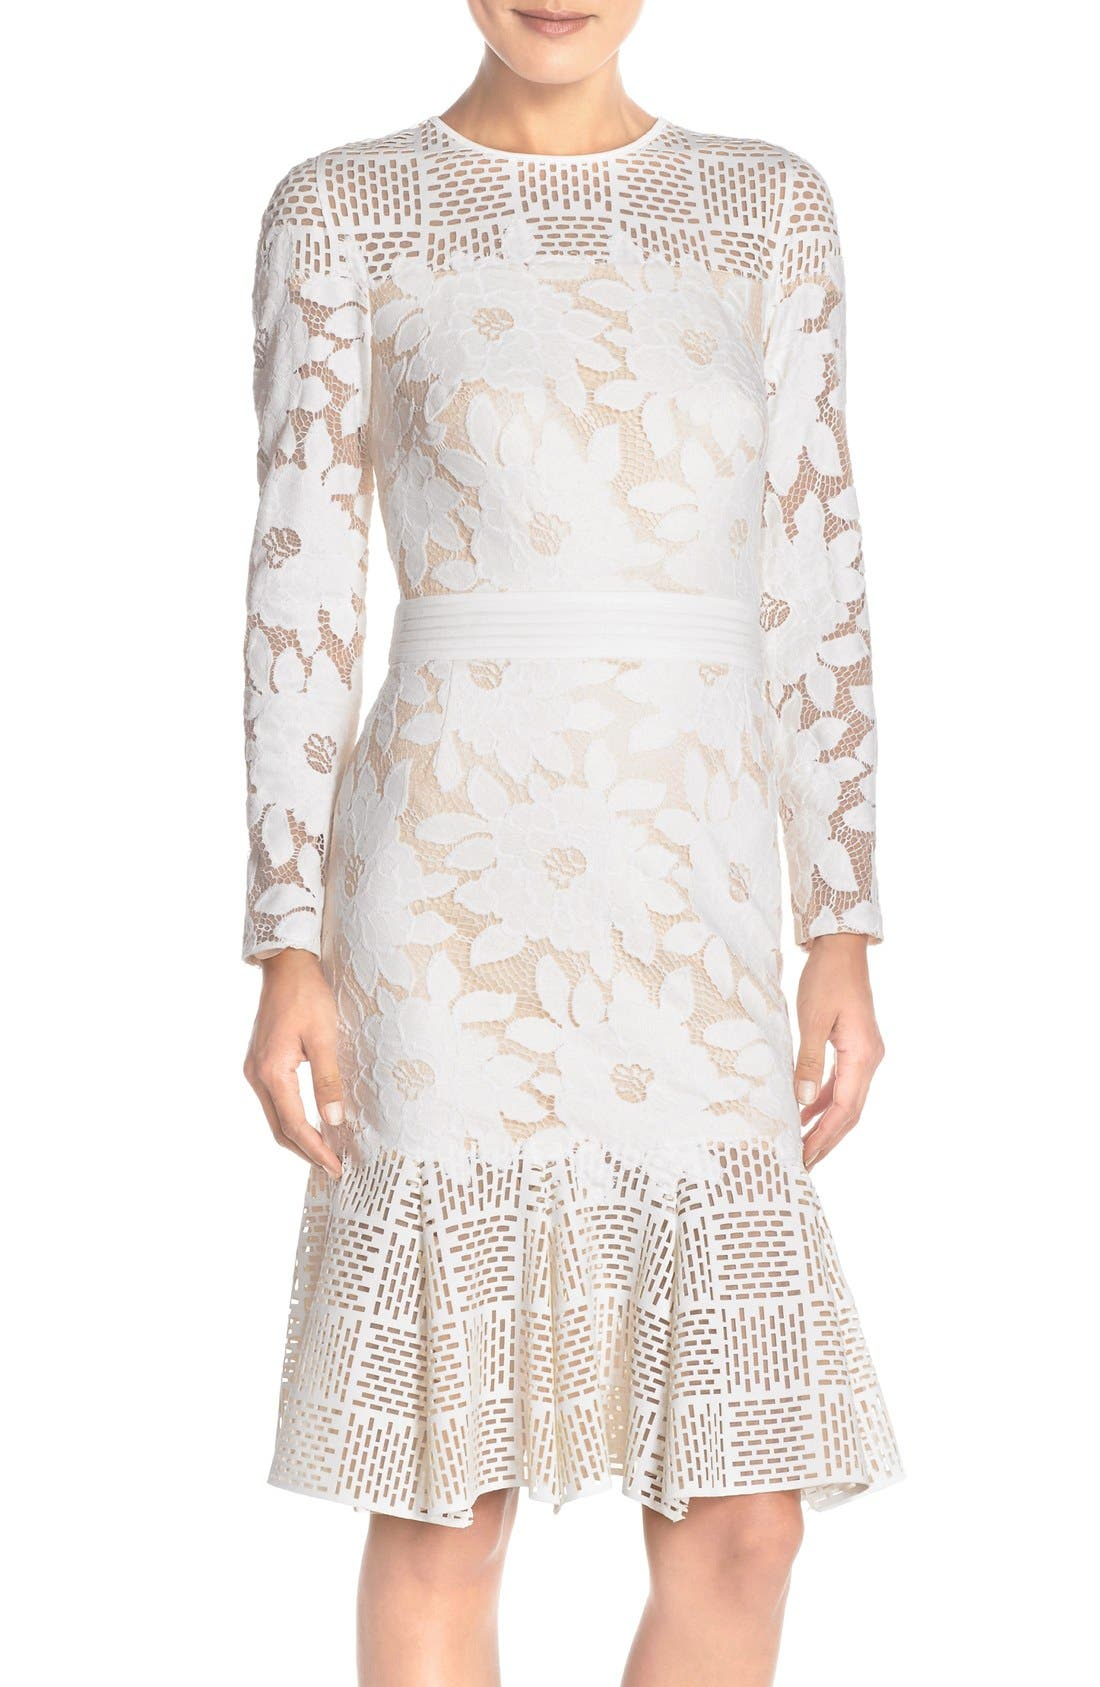 Main Image - Tadashi Shoji Lace & Cutout Neoprene Sheath Dress